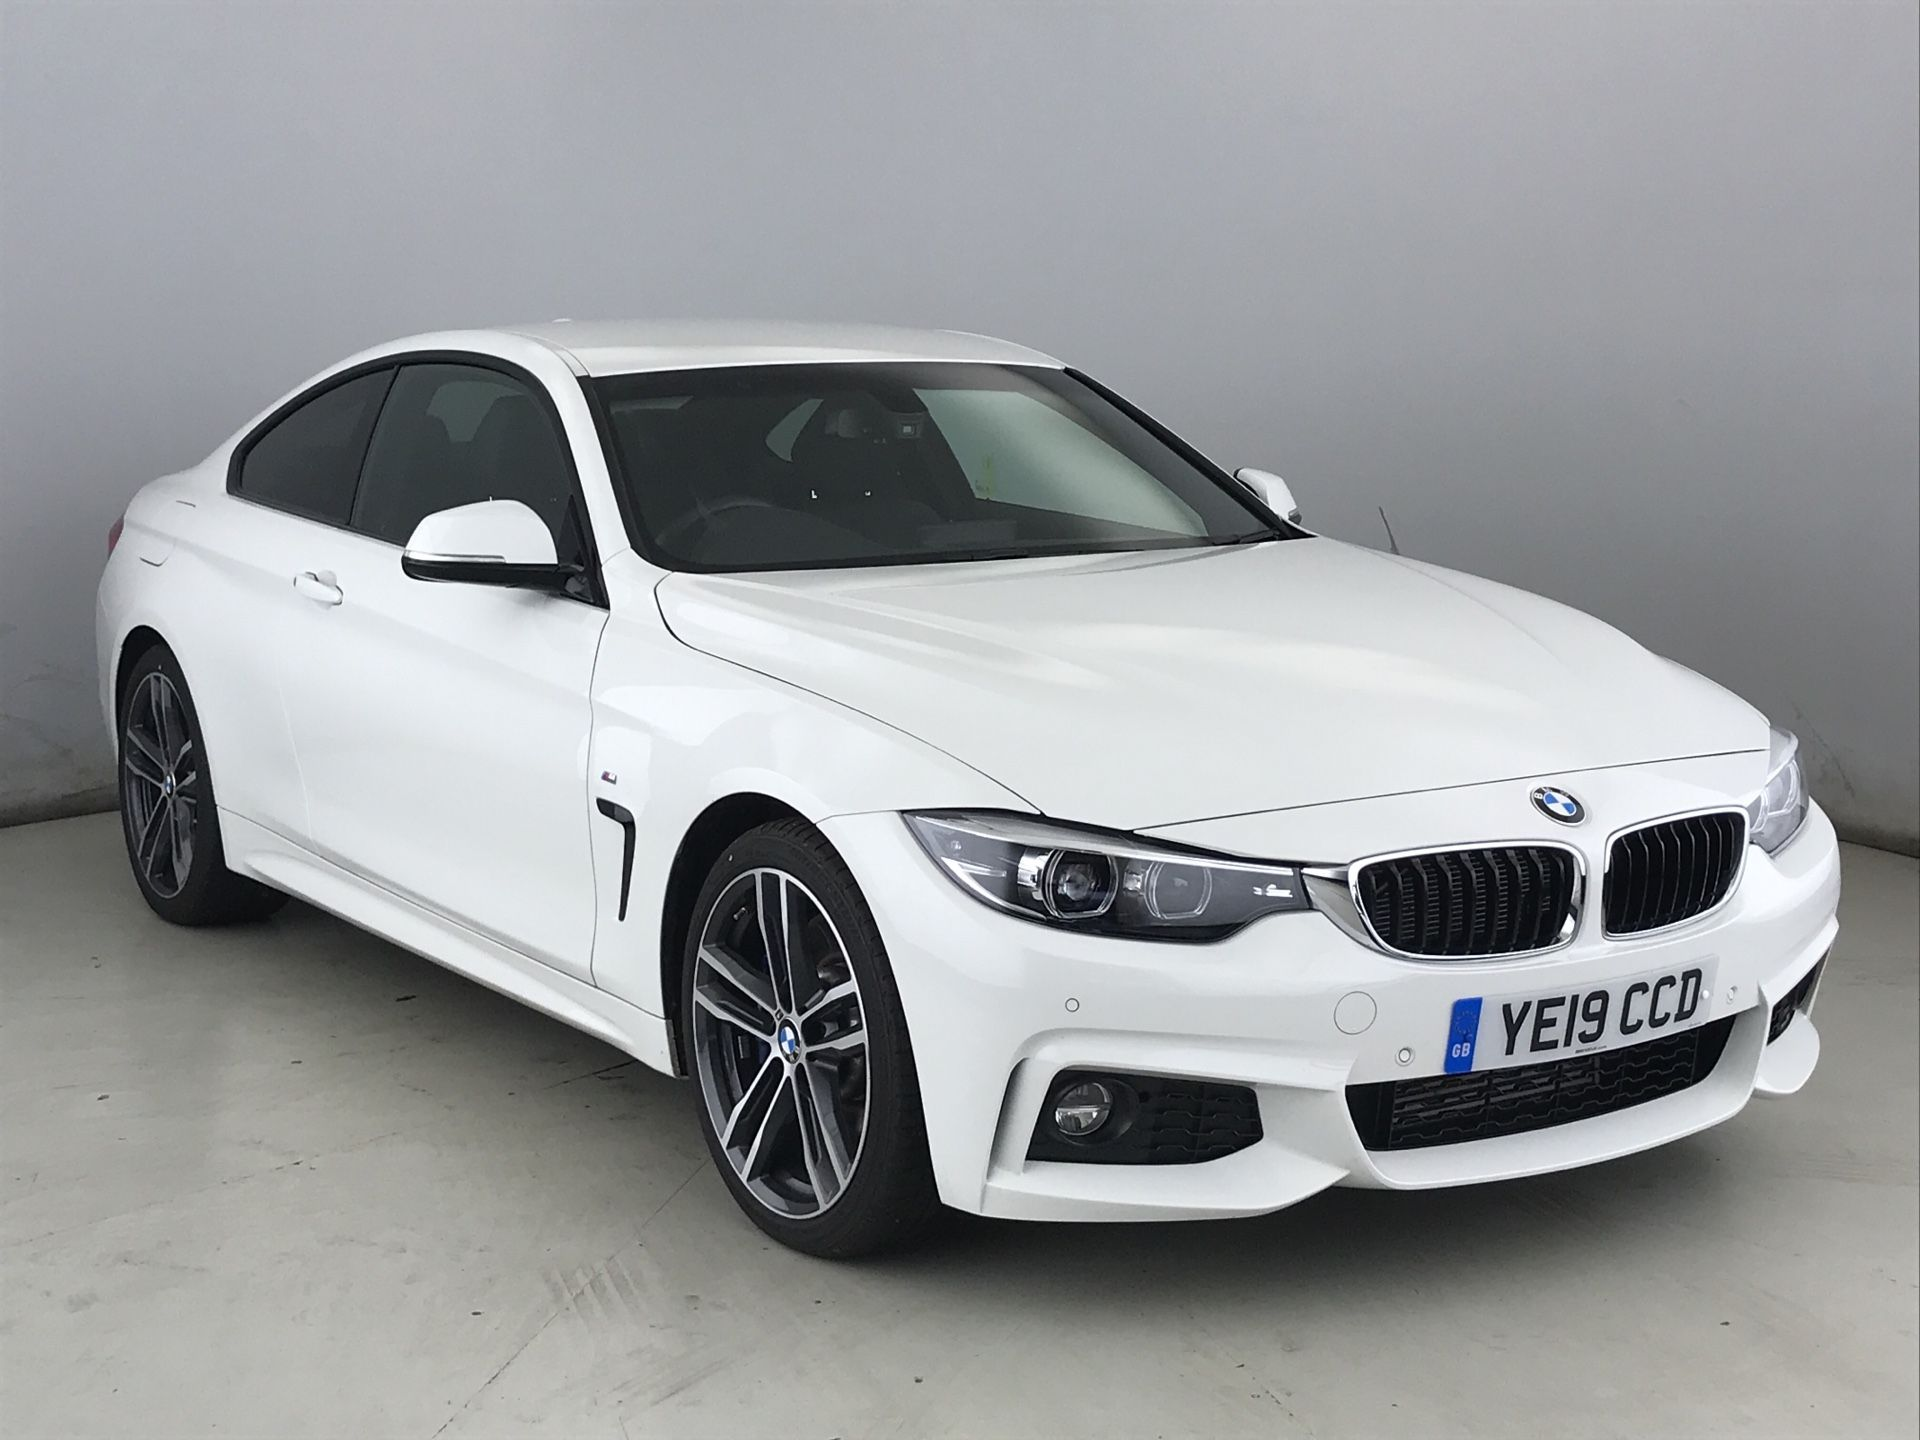 Image 1 - BMW 430d M Sport Coupe (YE19CCD)